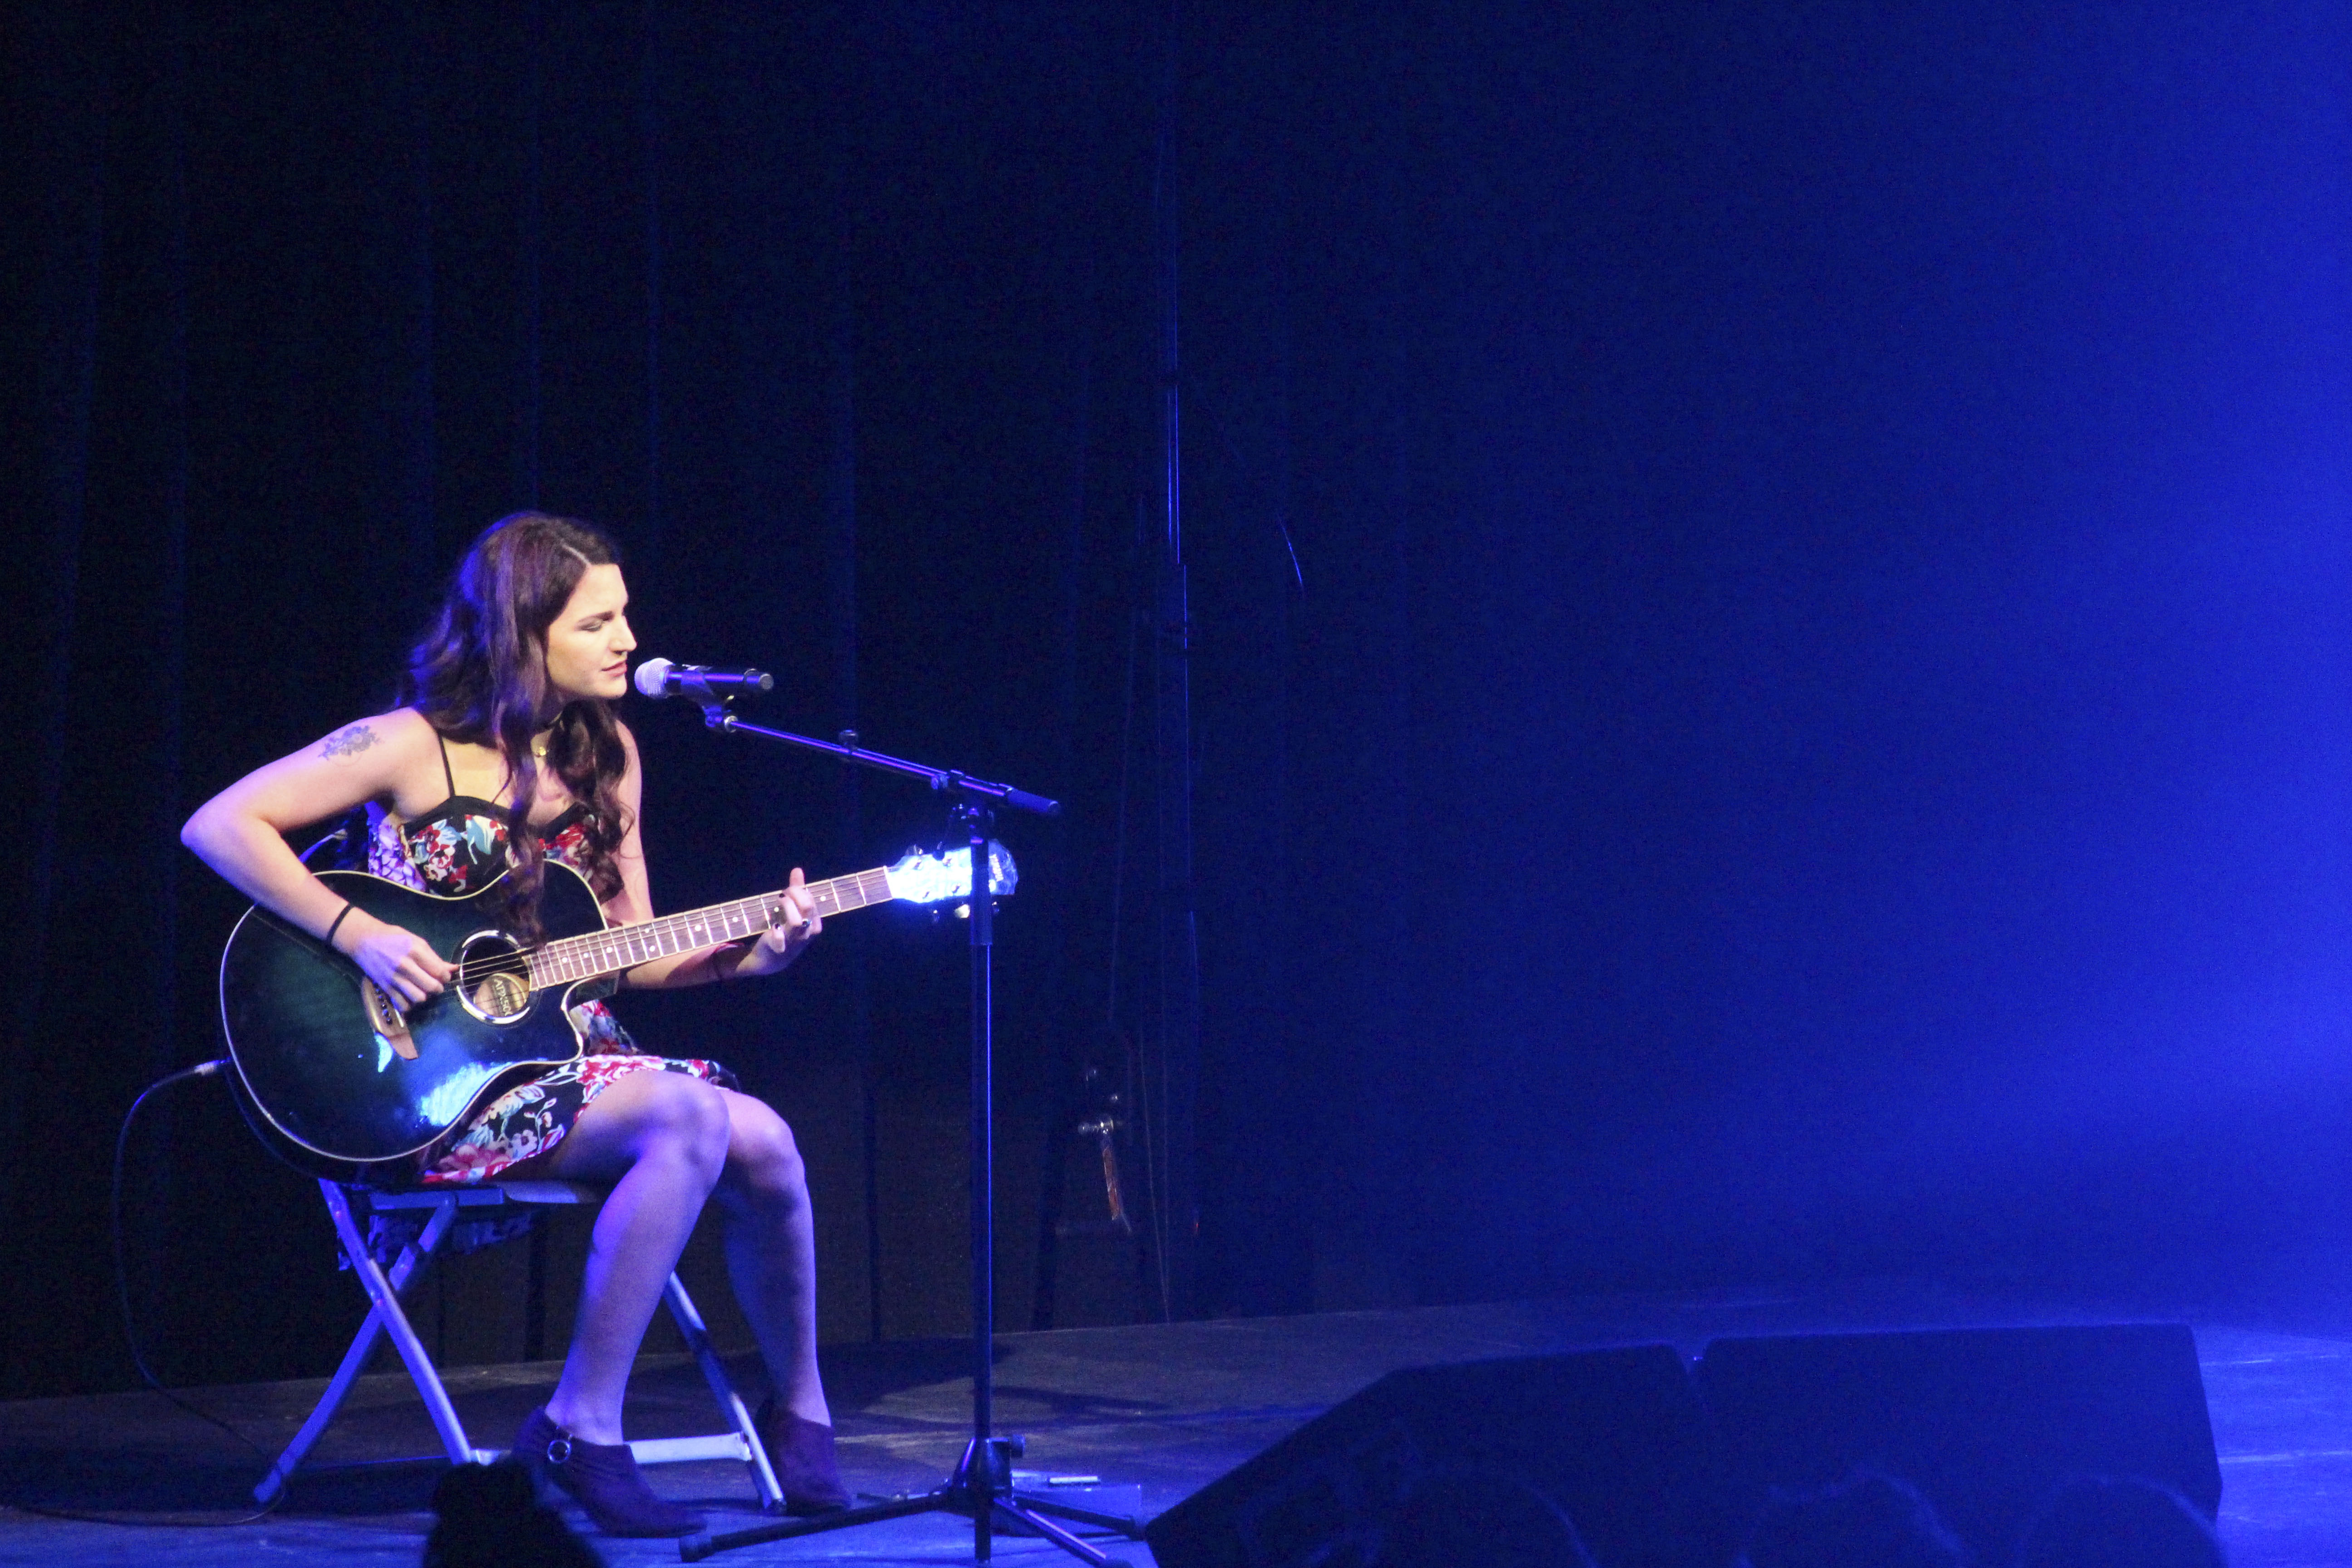 A student playing guitar on stage